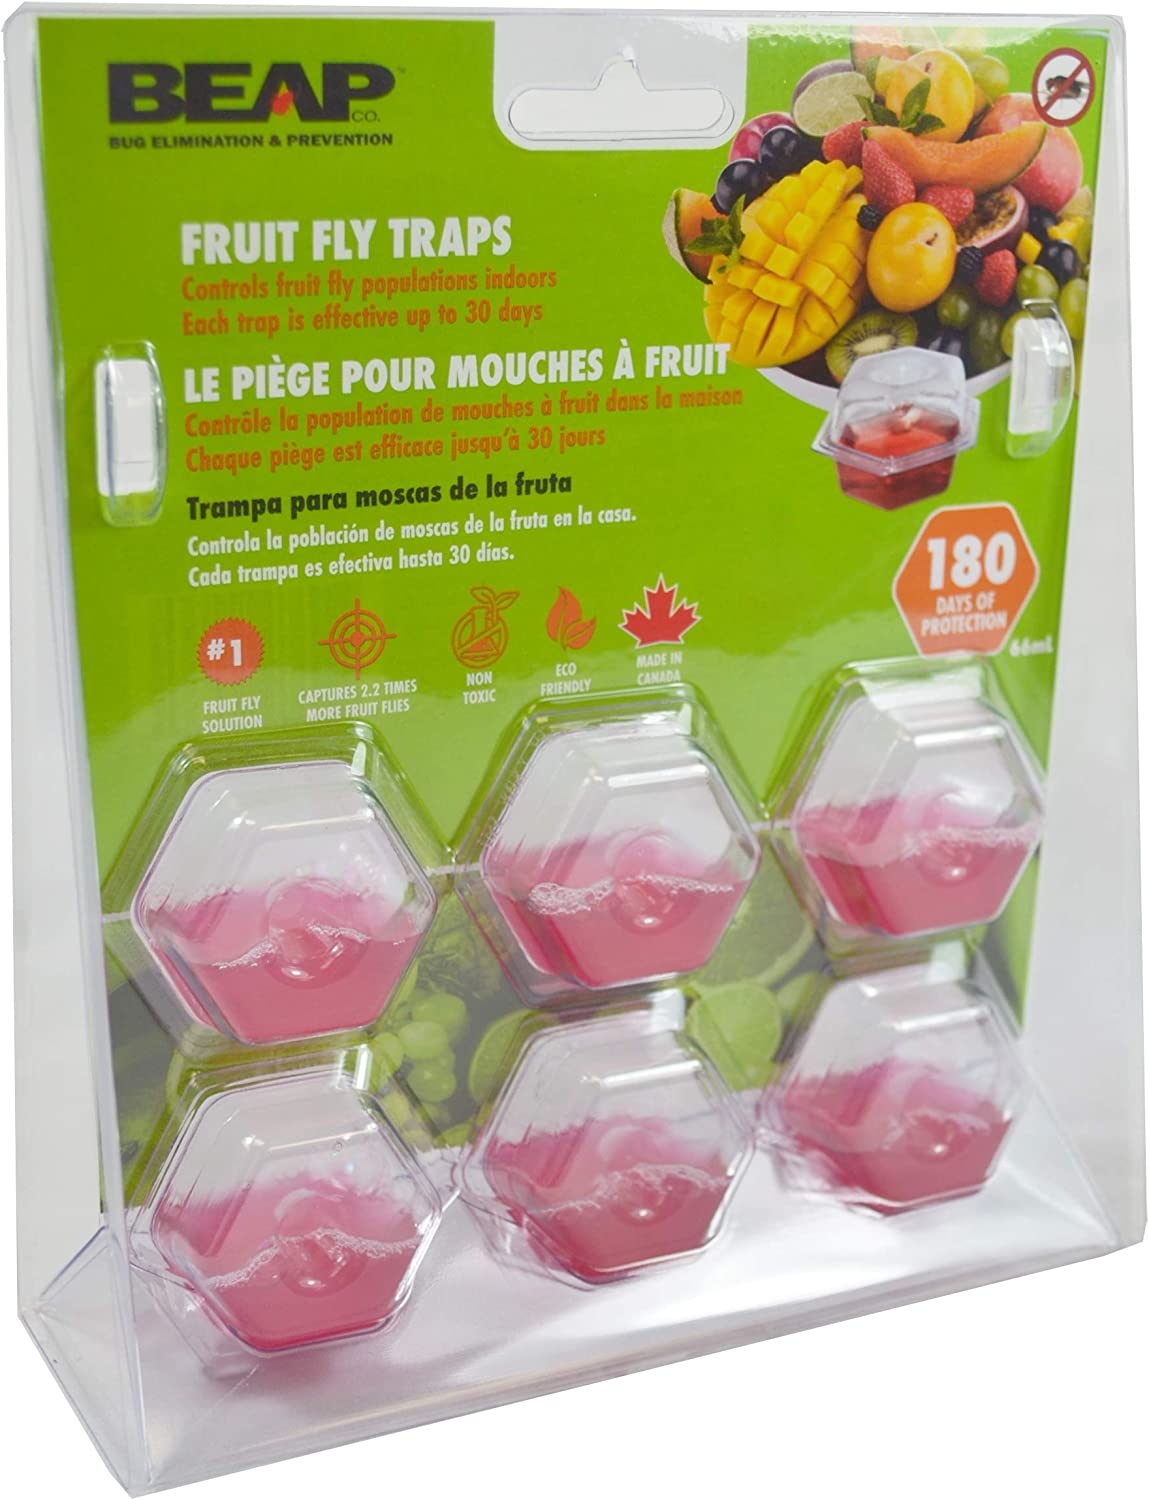 Fruit Fly Trap Killer Plastic Drosophila Trap Fly Catcher pest Insect controlÖÖ